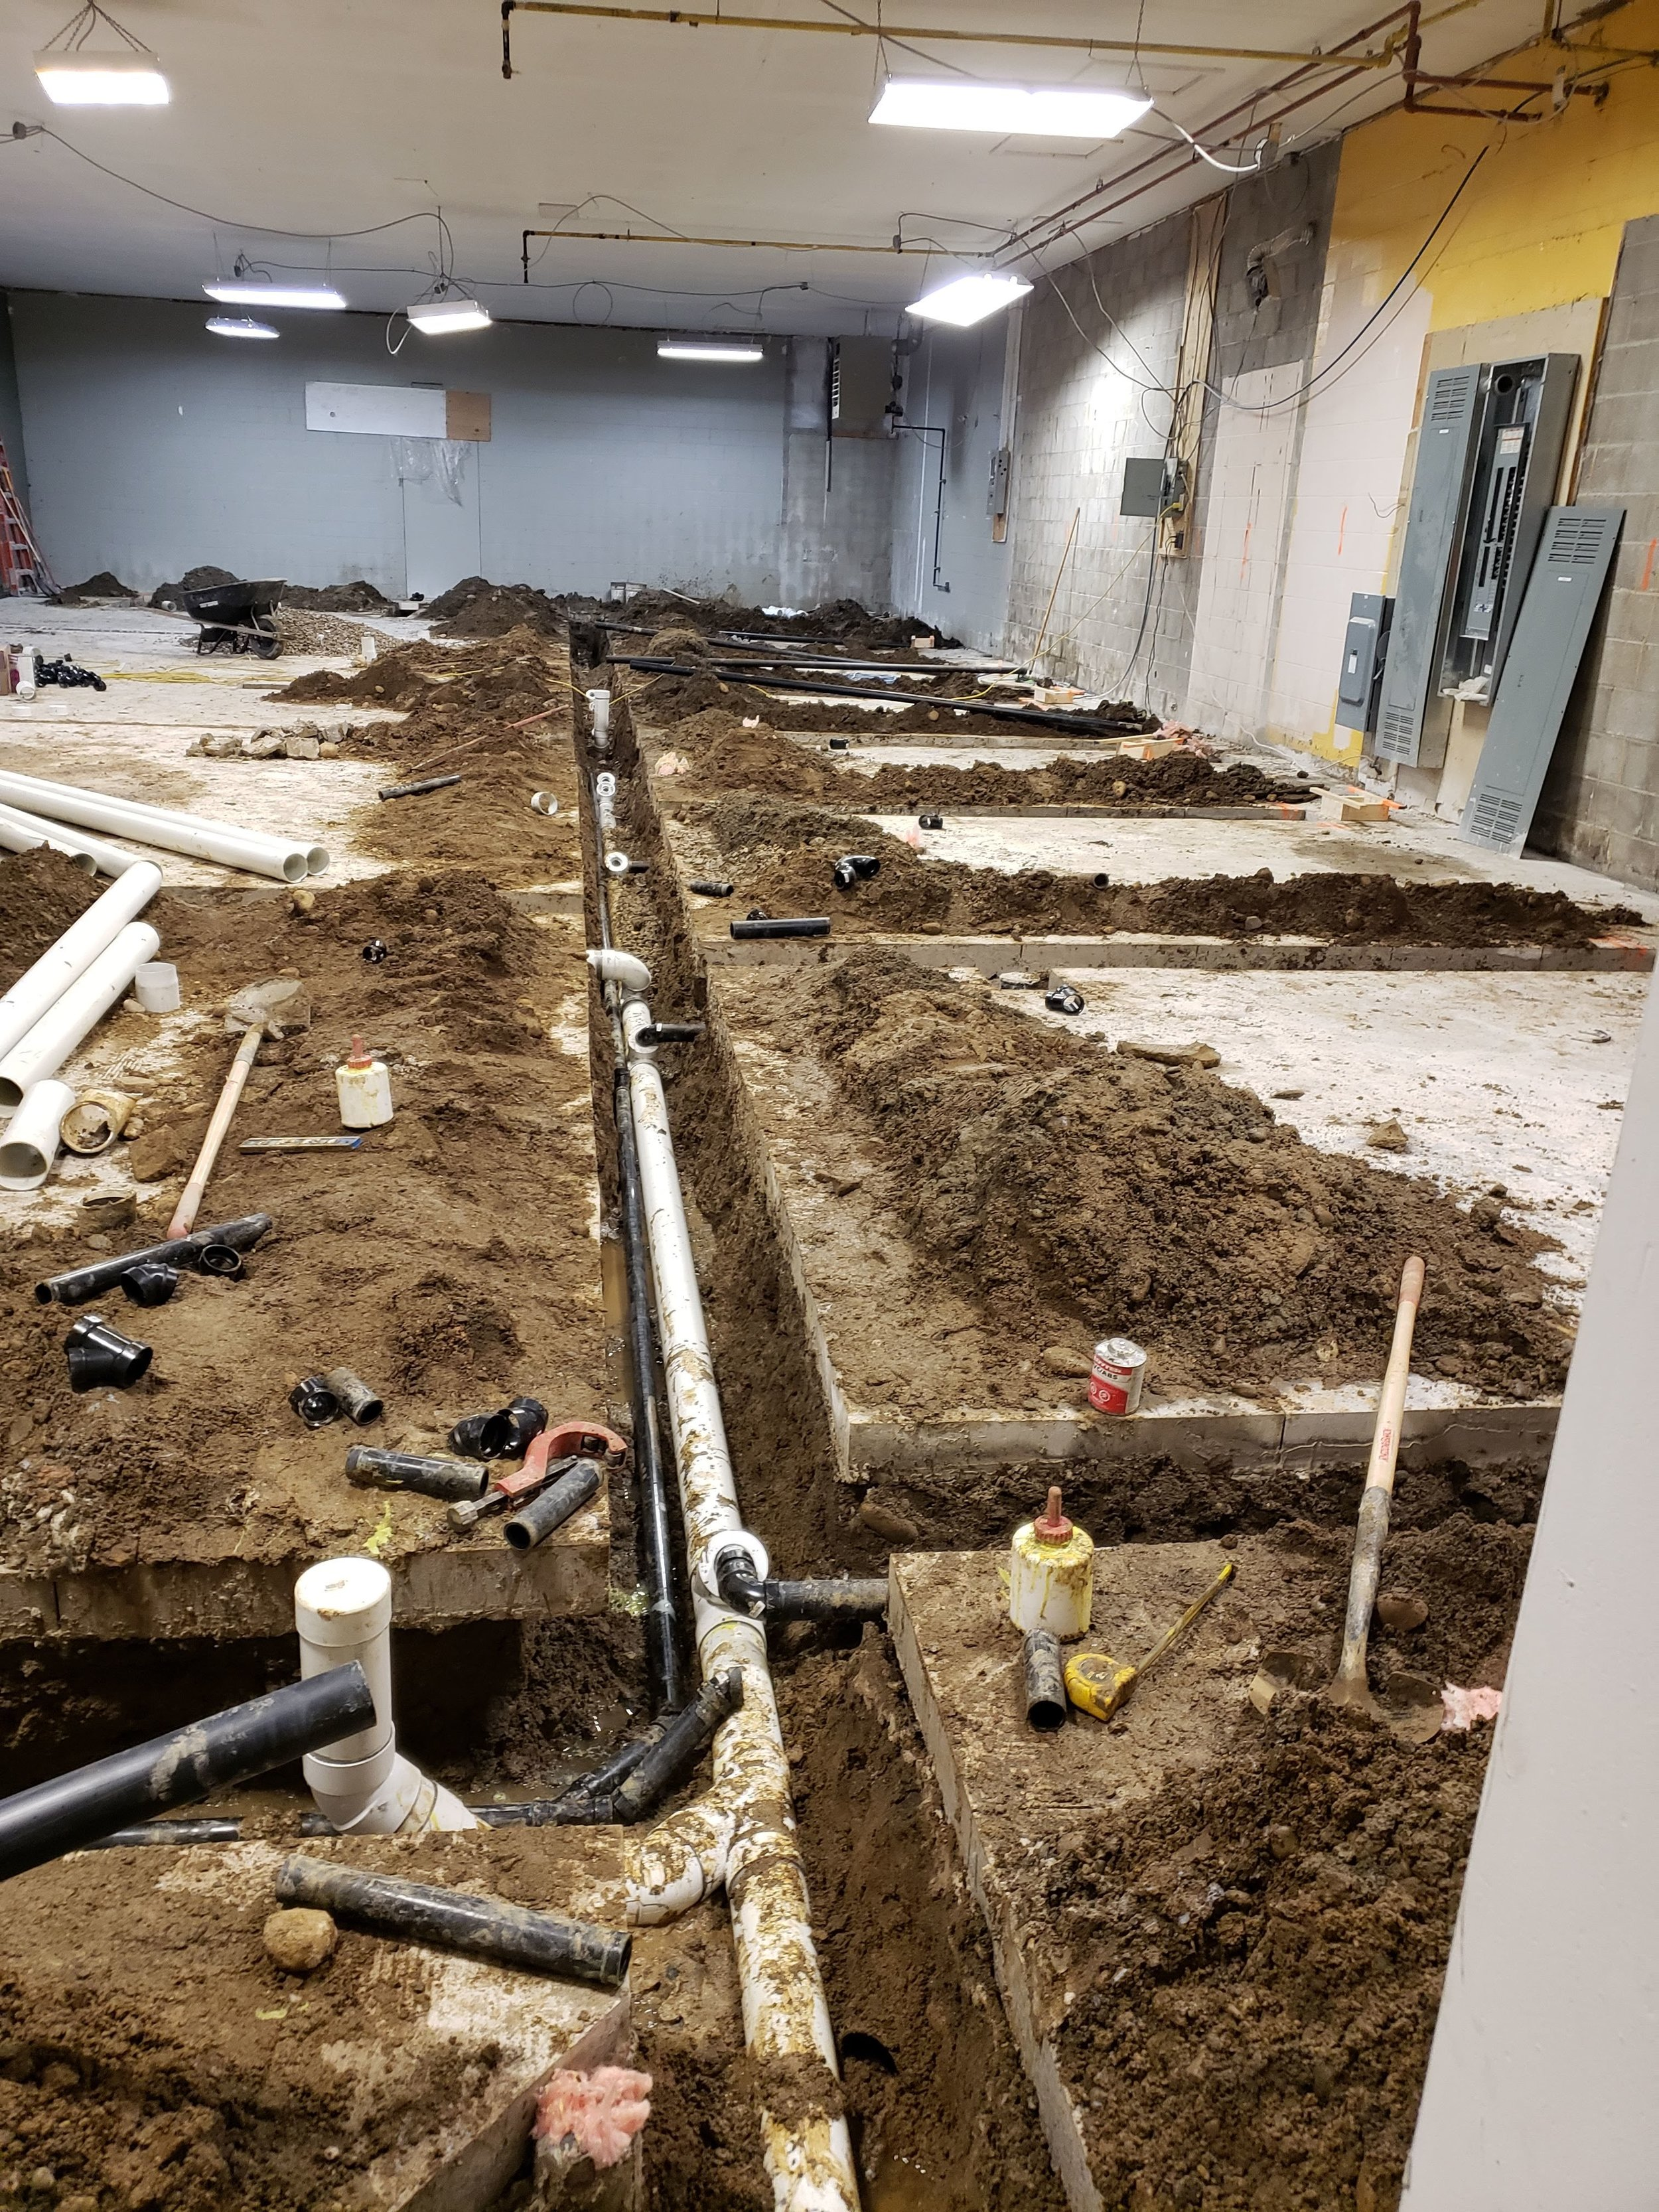 Plumbing lines getting cleaned up before inspection.